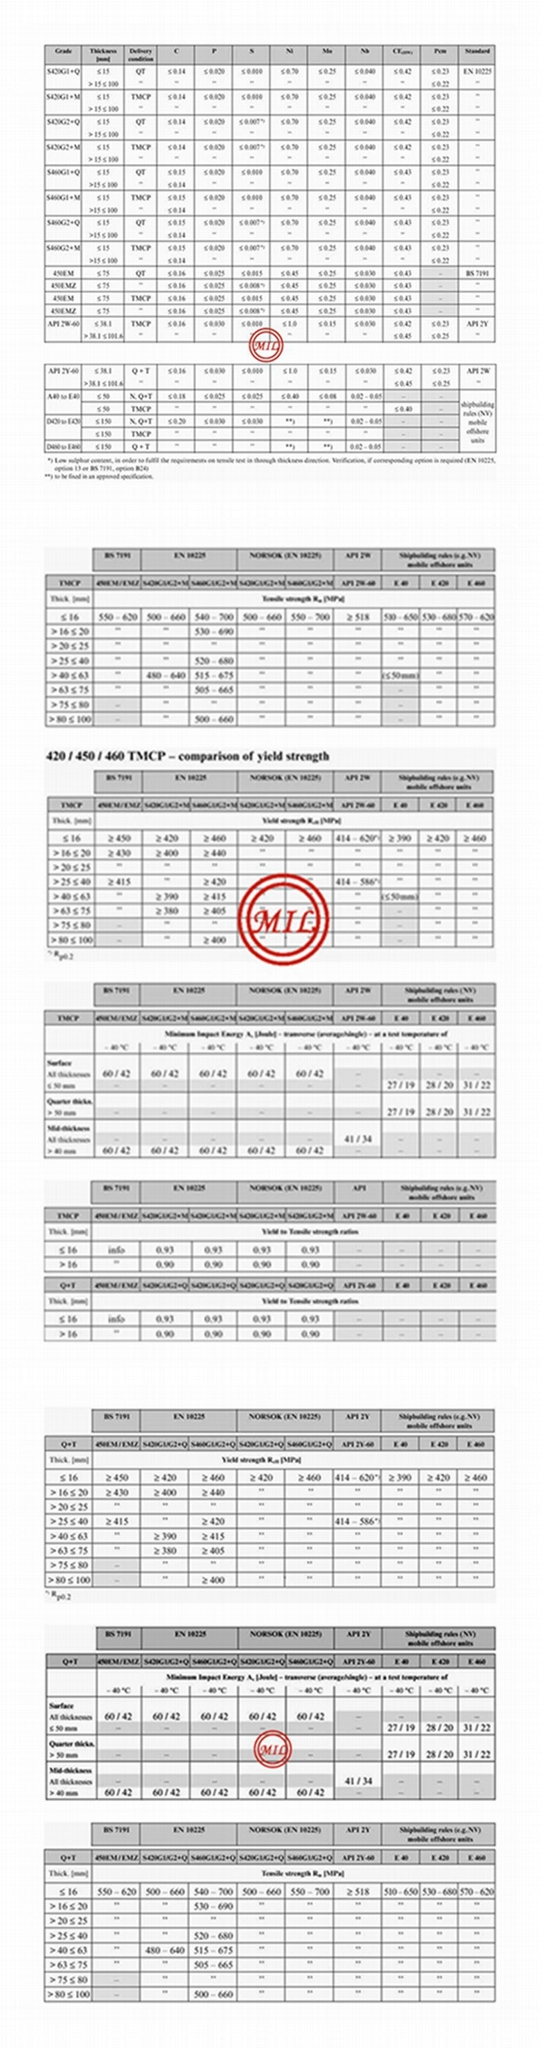 EN 10225 460-API 2H-2W-2Y GR.60 STEEL PLATE SPECIFICATION